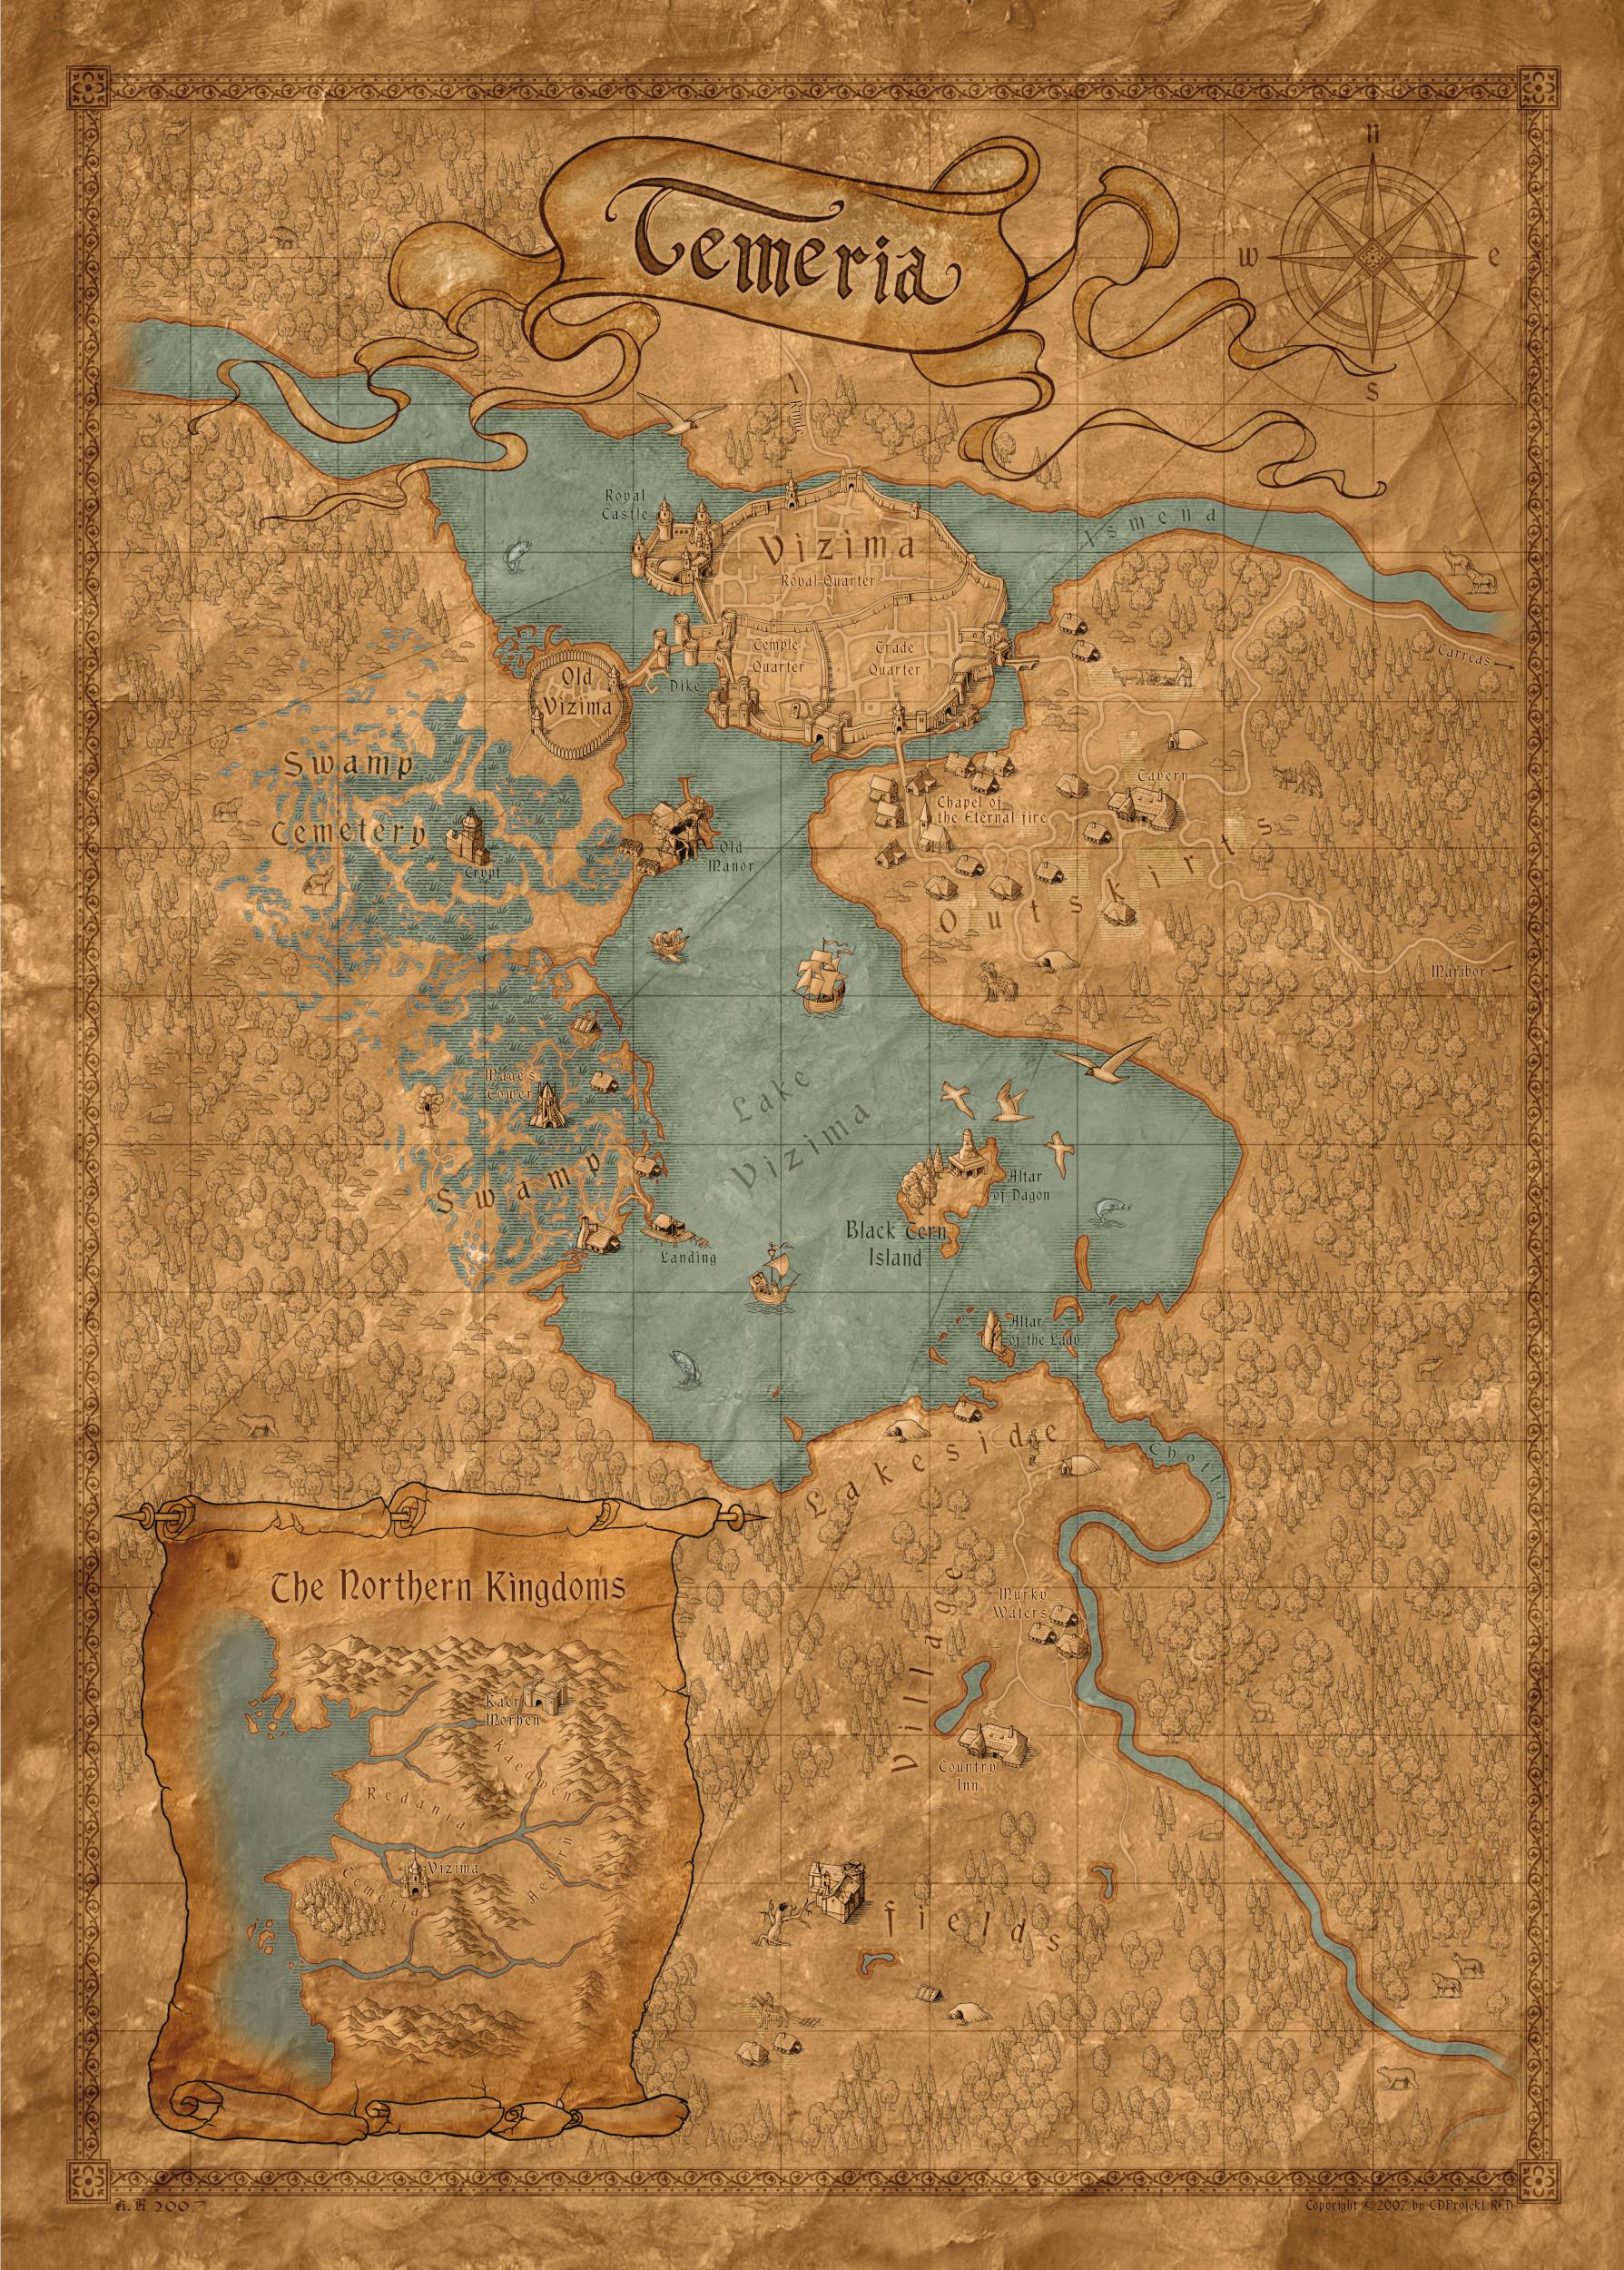 Witcher 3 Toussaint Map : witcher, toussaint, Nearly, Witcher, Still, Incredibly, Charming